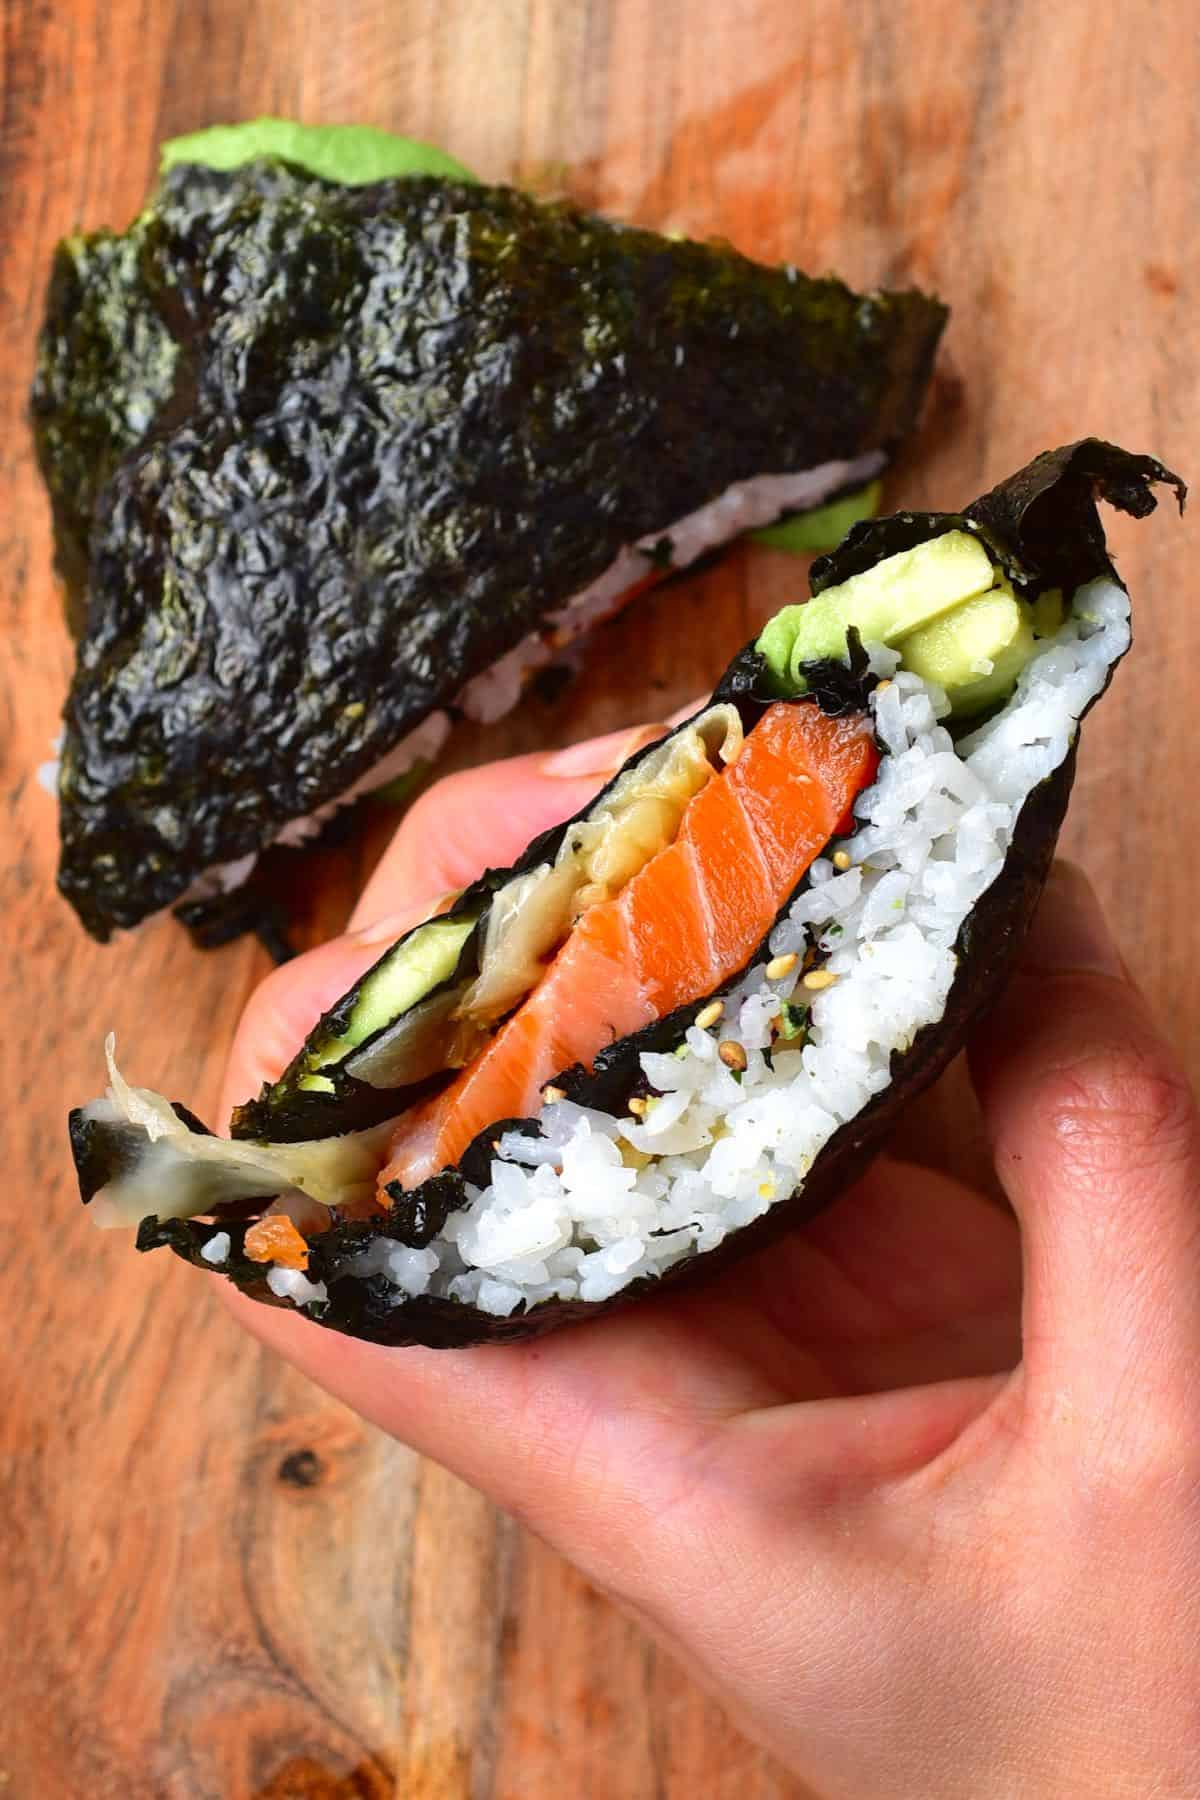 Sushi nori wrap with salmon cut in two, one half held in a hand